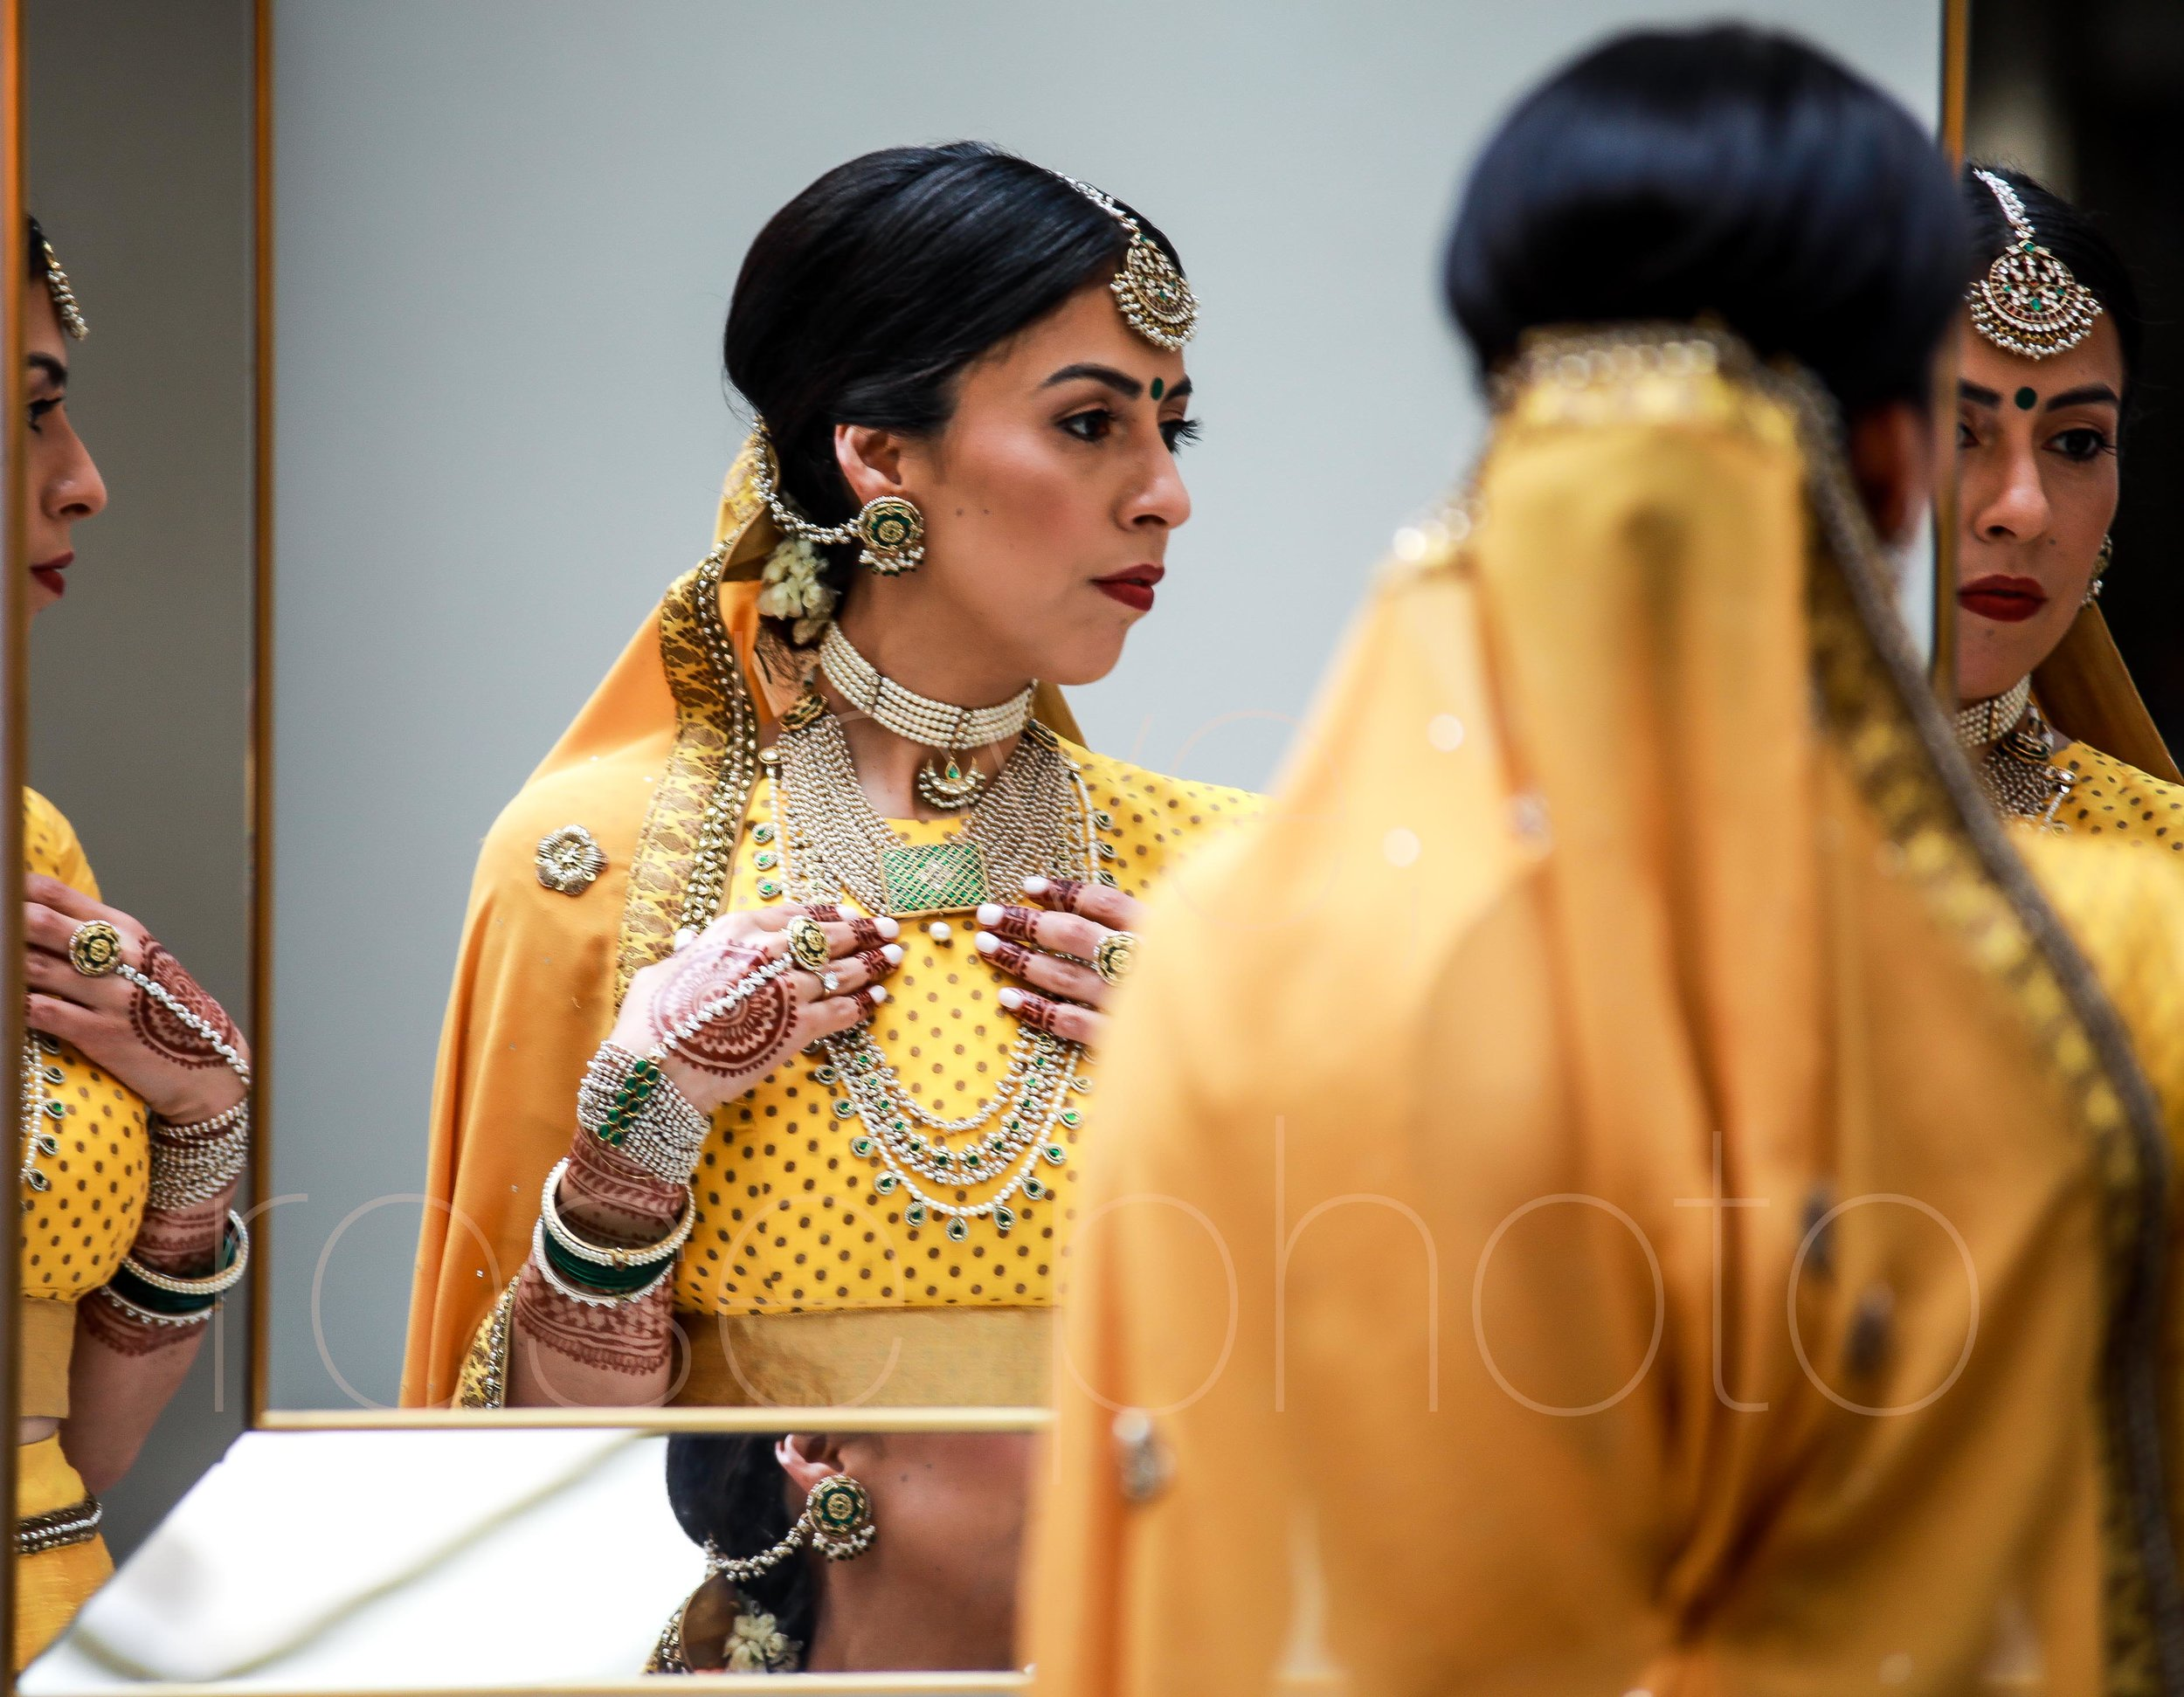 best chicago indian wedding photographer rose photo video collective-60.jpg